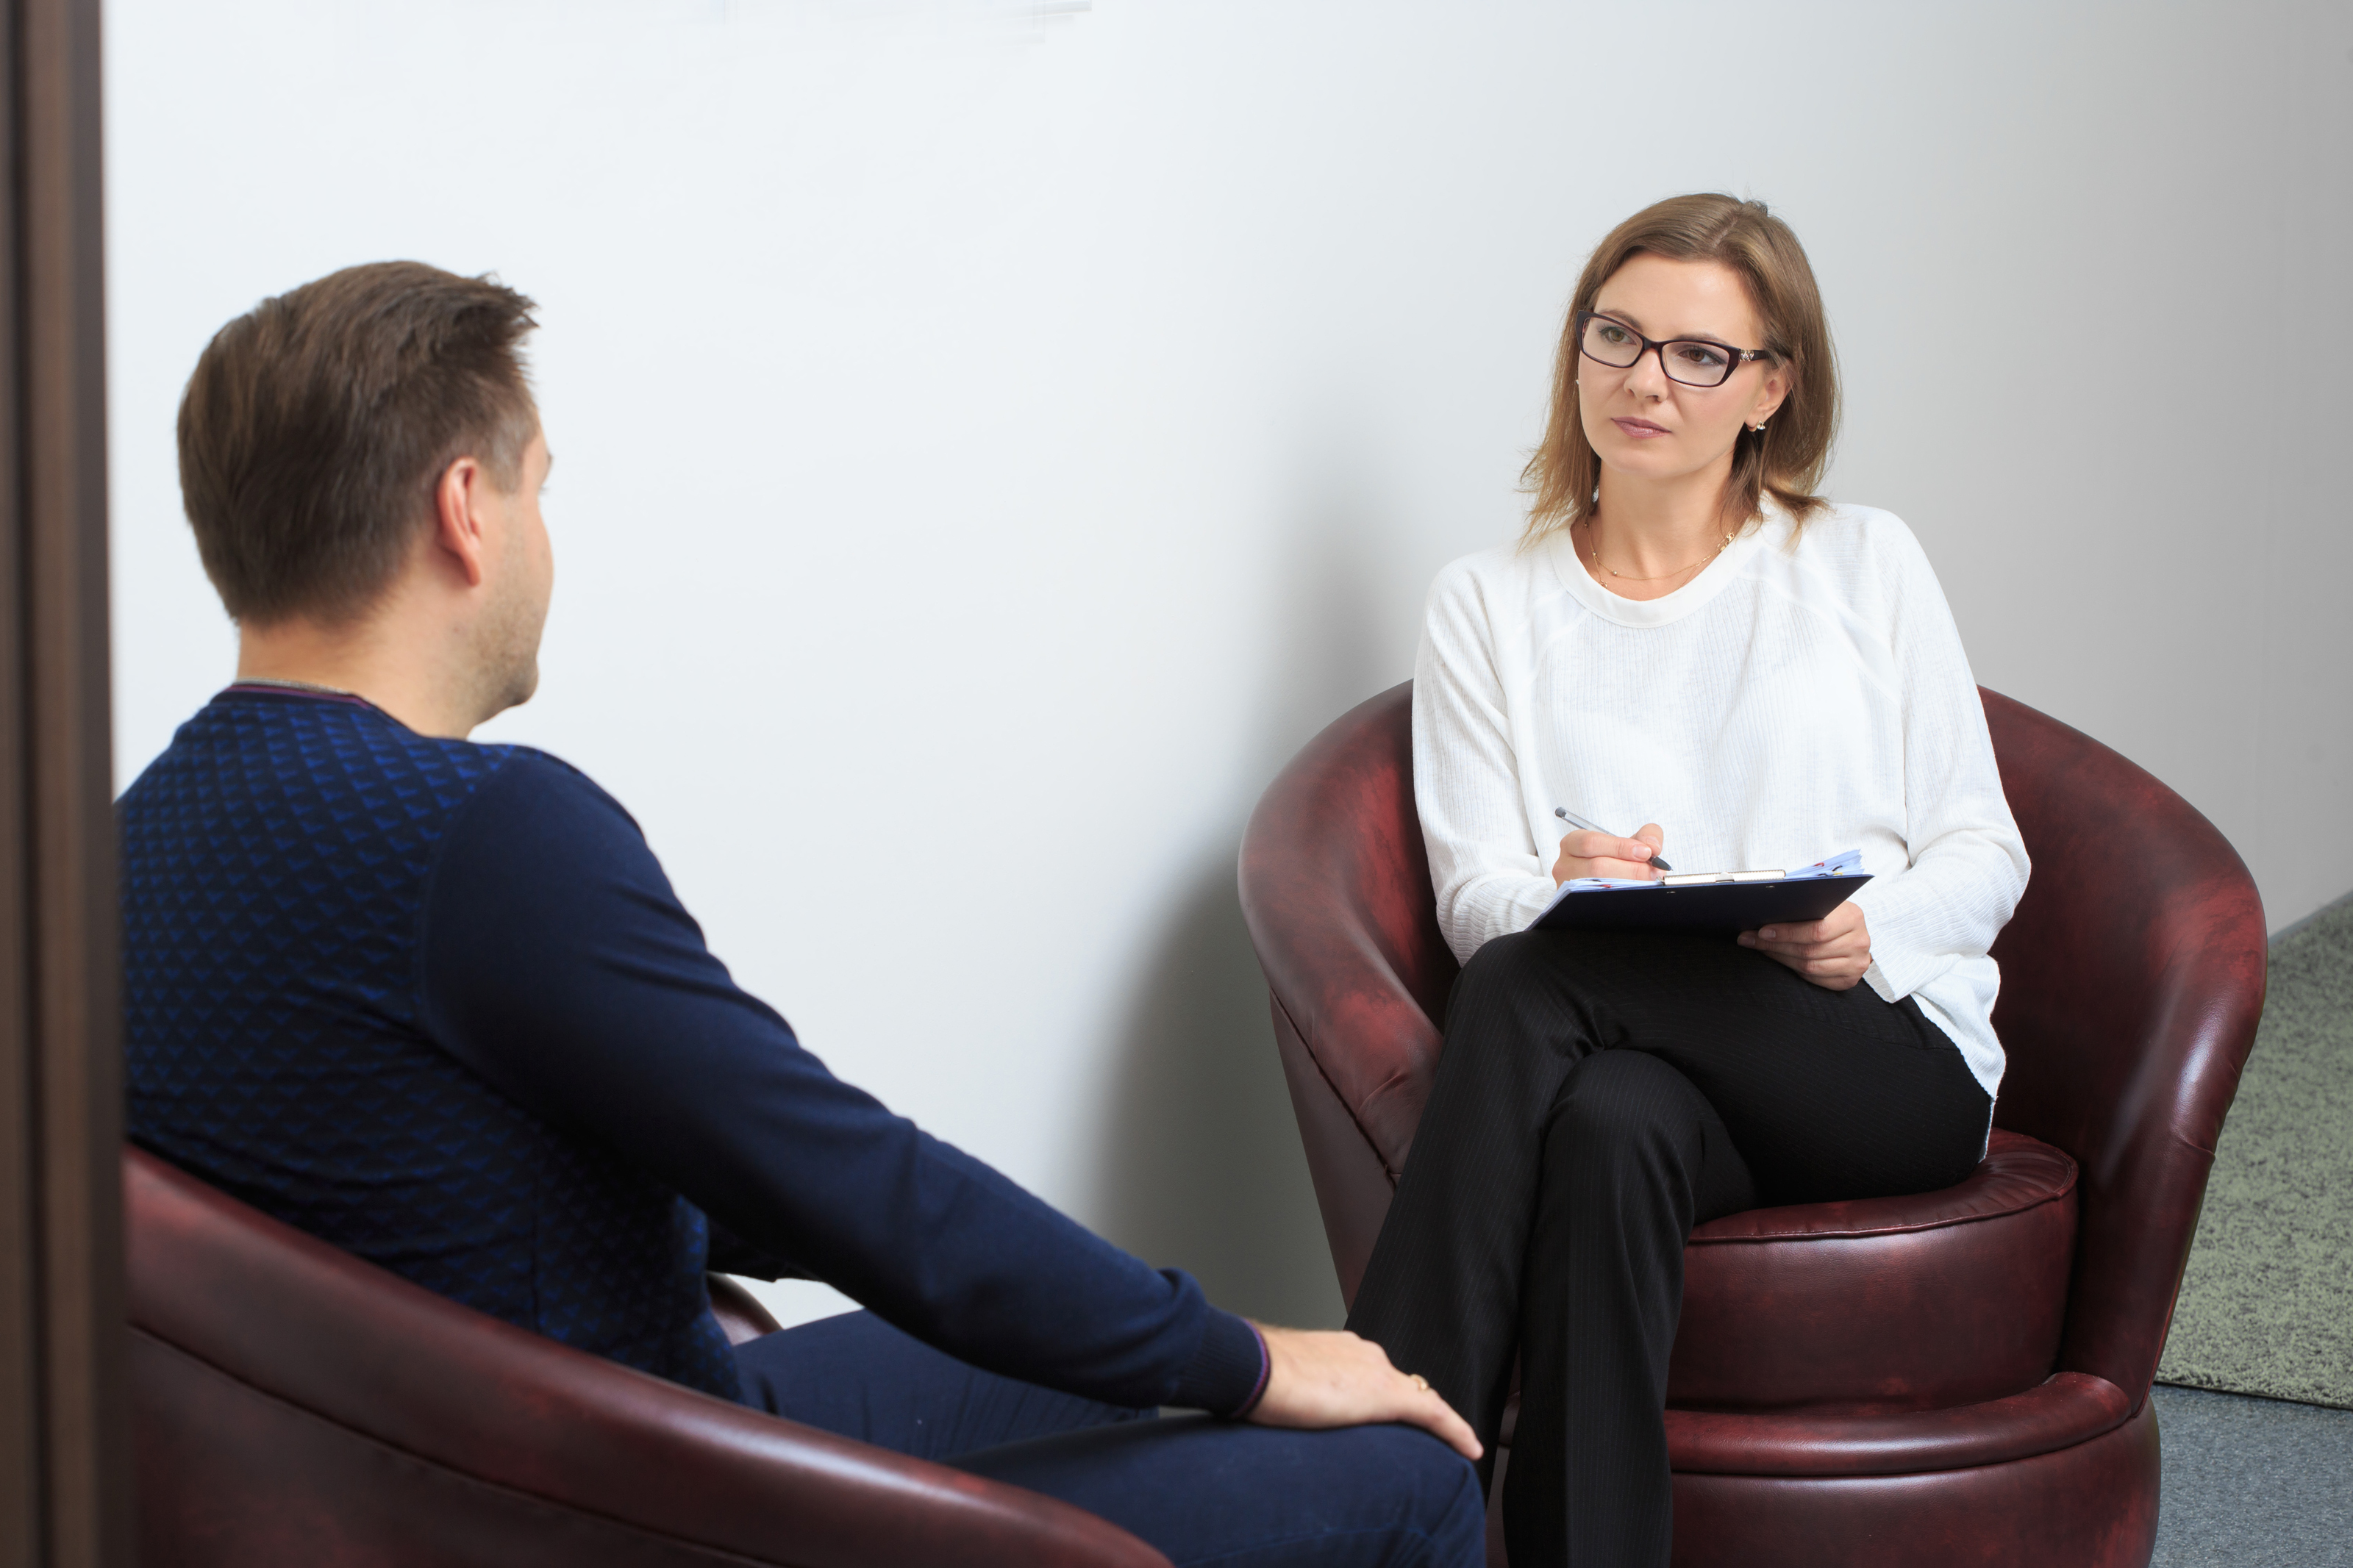 Counsellor with client sitting opposite each other